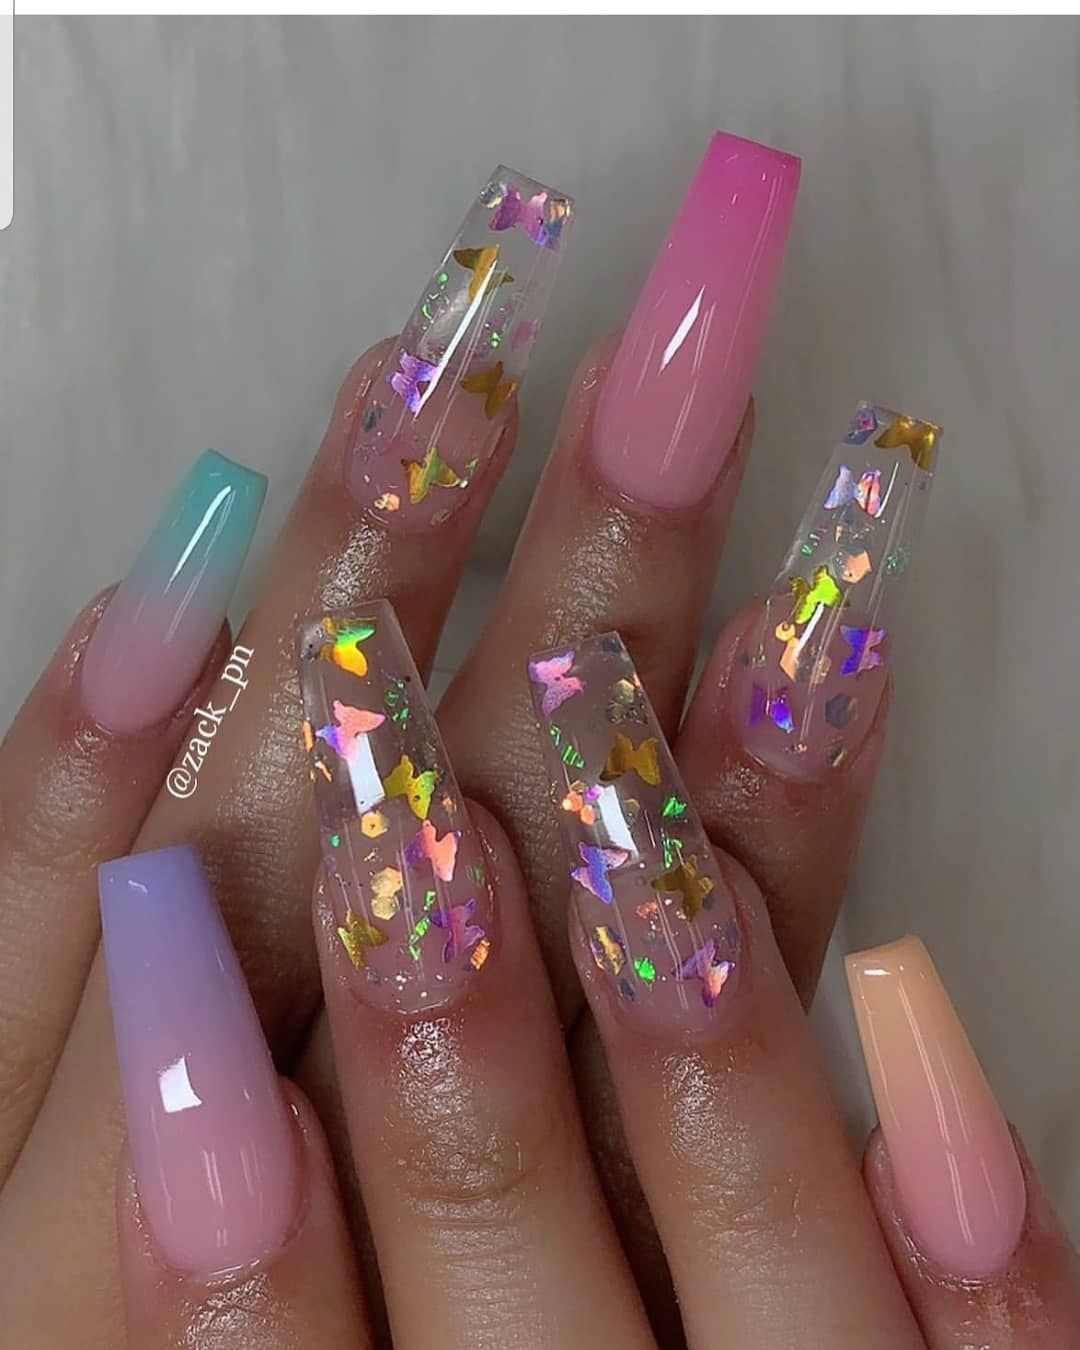 Muaannouncer On Instagram Would You Rock Beautiful Nails Yay Or Nay C Best Acrylic Nails Summer Acrylic Nails Acrylic Nail Designs